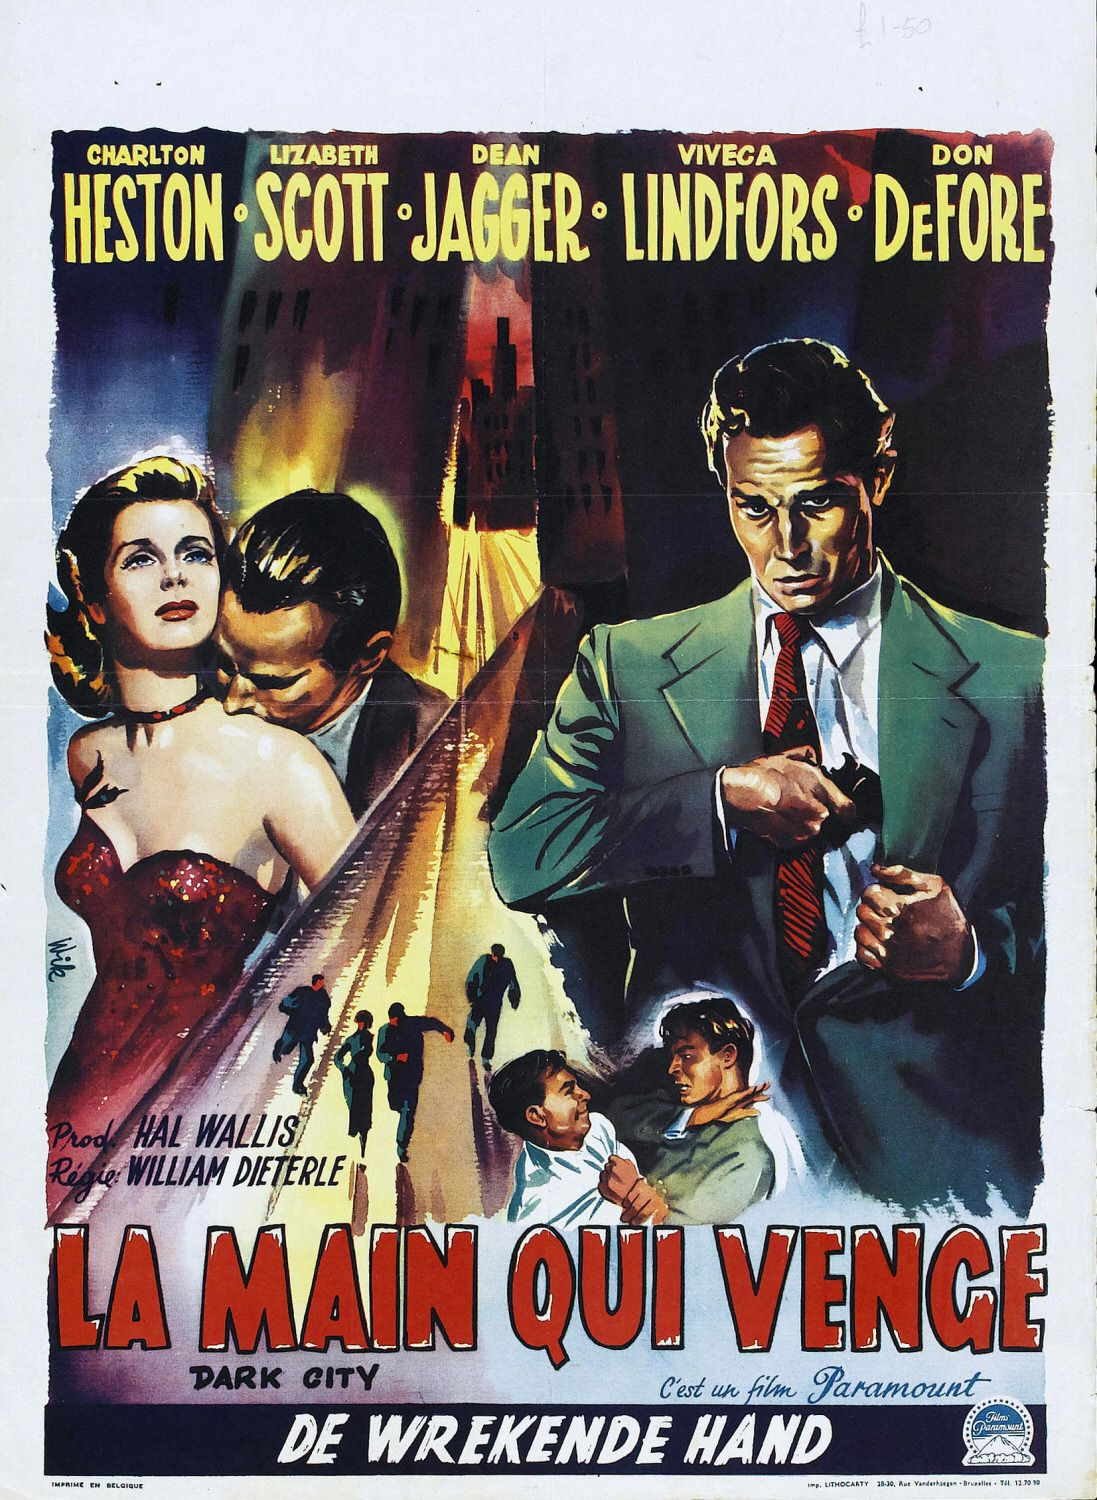 Dark City - la main qui venge - film 1950 - 50s - old poster - Charlton Heston - Lizabeth Scott - Viveca Lindfors